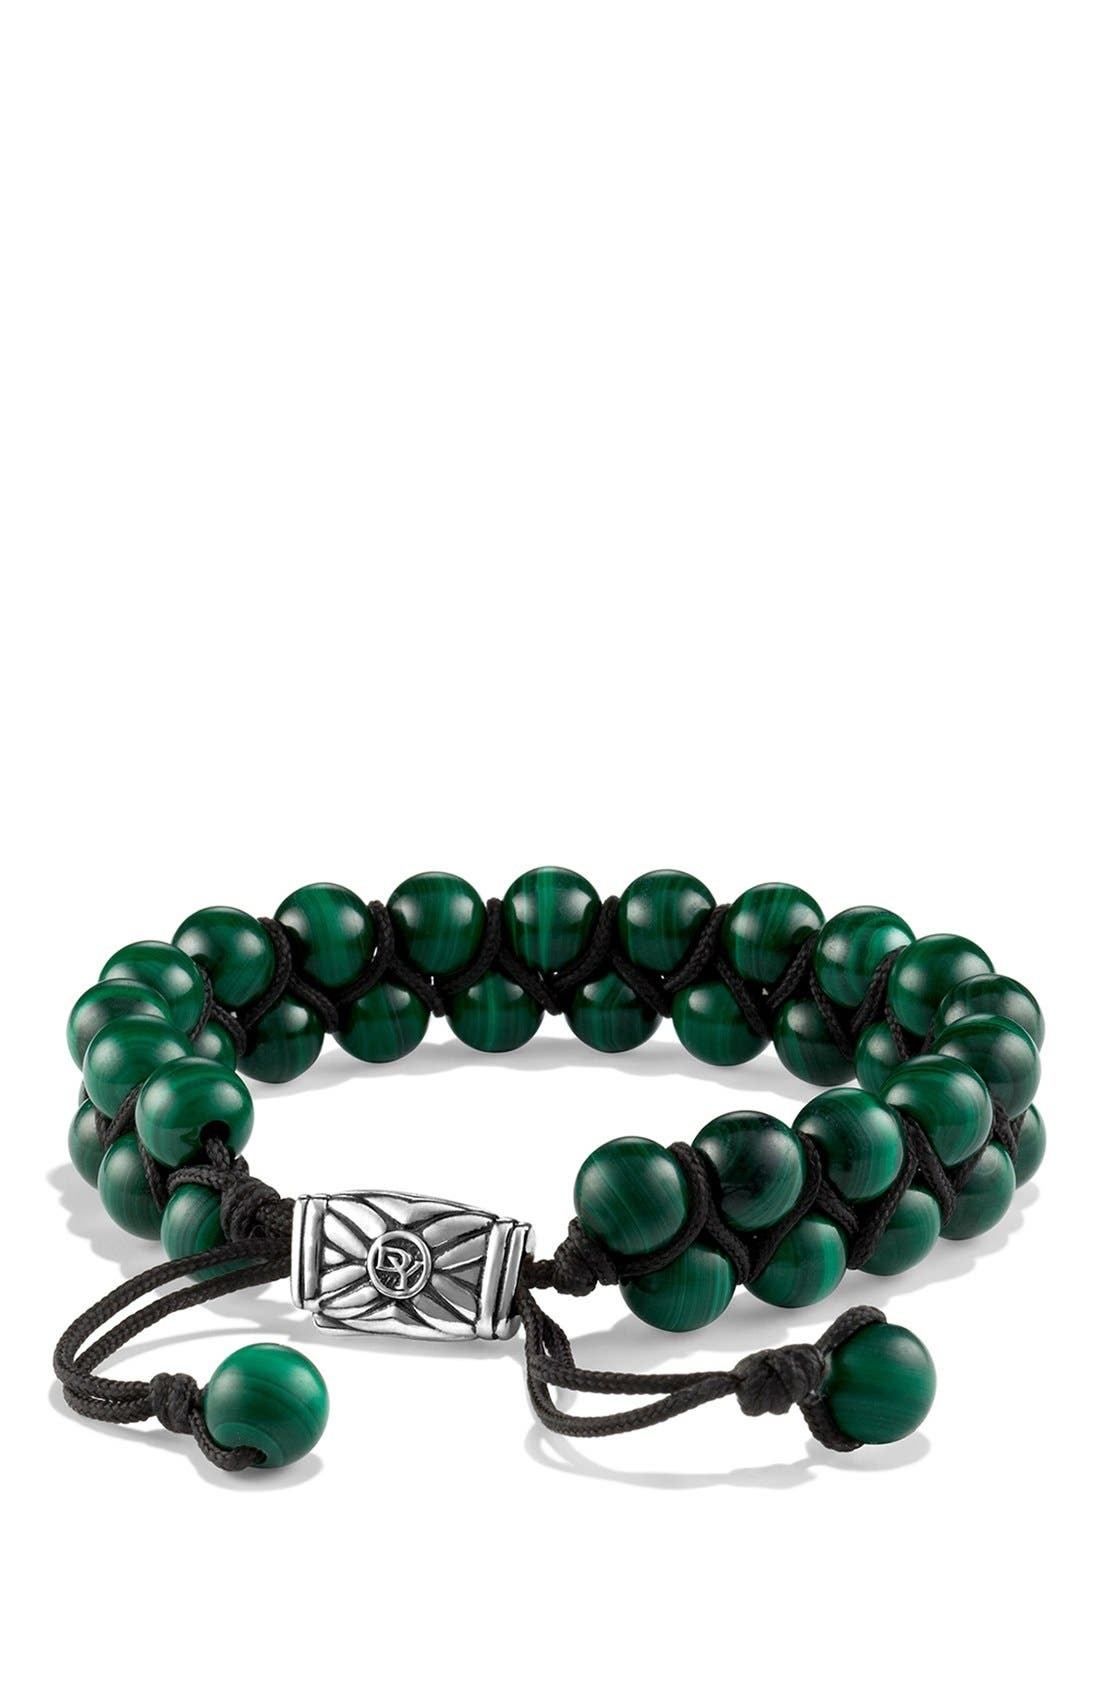 Main Image - David Yurman 'Spiritual Beads' Two-Row Bracelet with Malachite